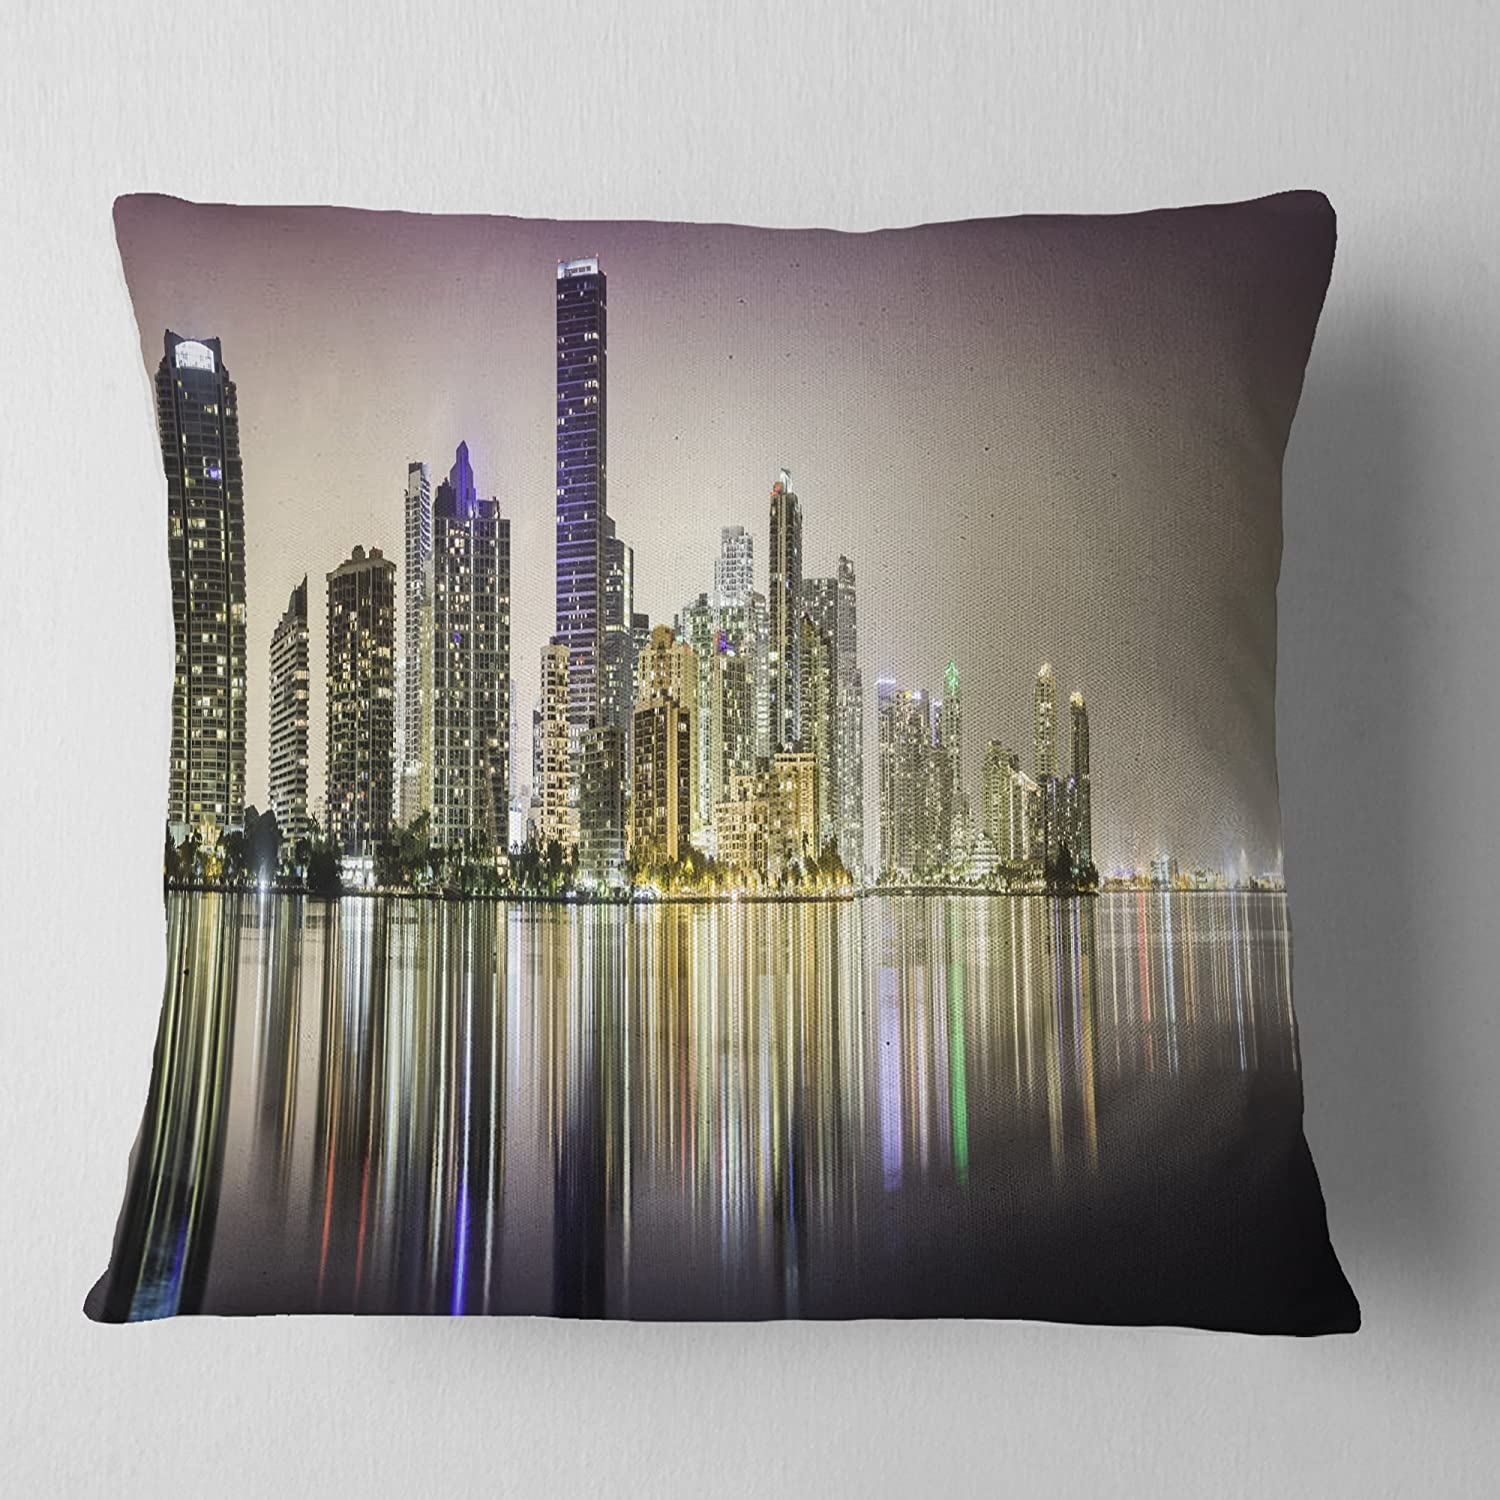 in Insert Printed On Both Side Designart CU14739-16-16 Miami Downtown Night Panorama Cushion Cover for Living Room Sofa Throw Pillow 16 in x 16 in